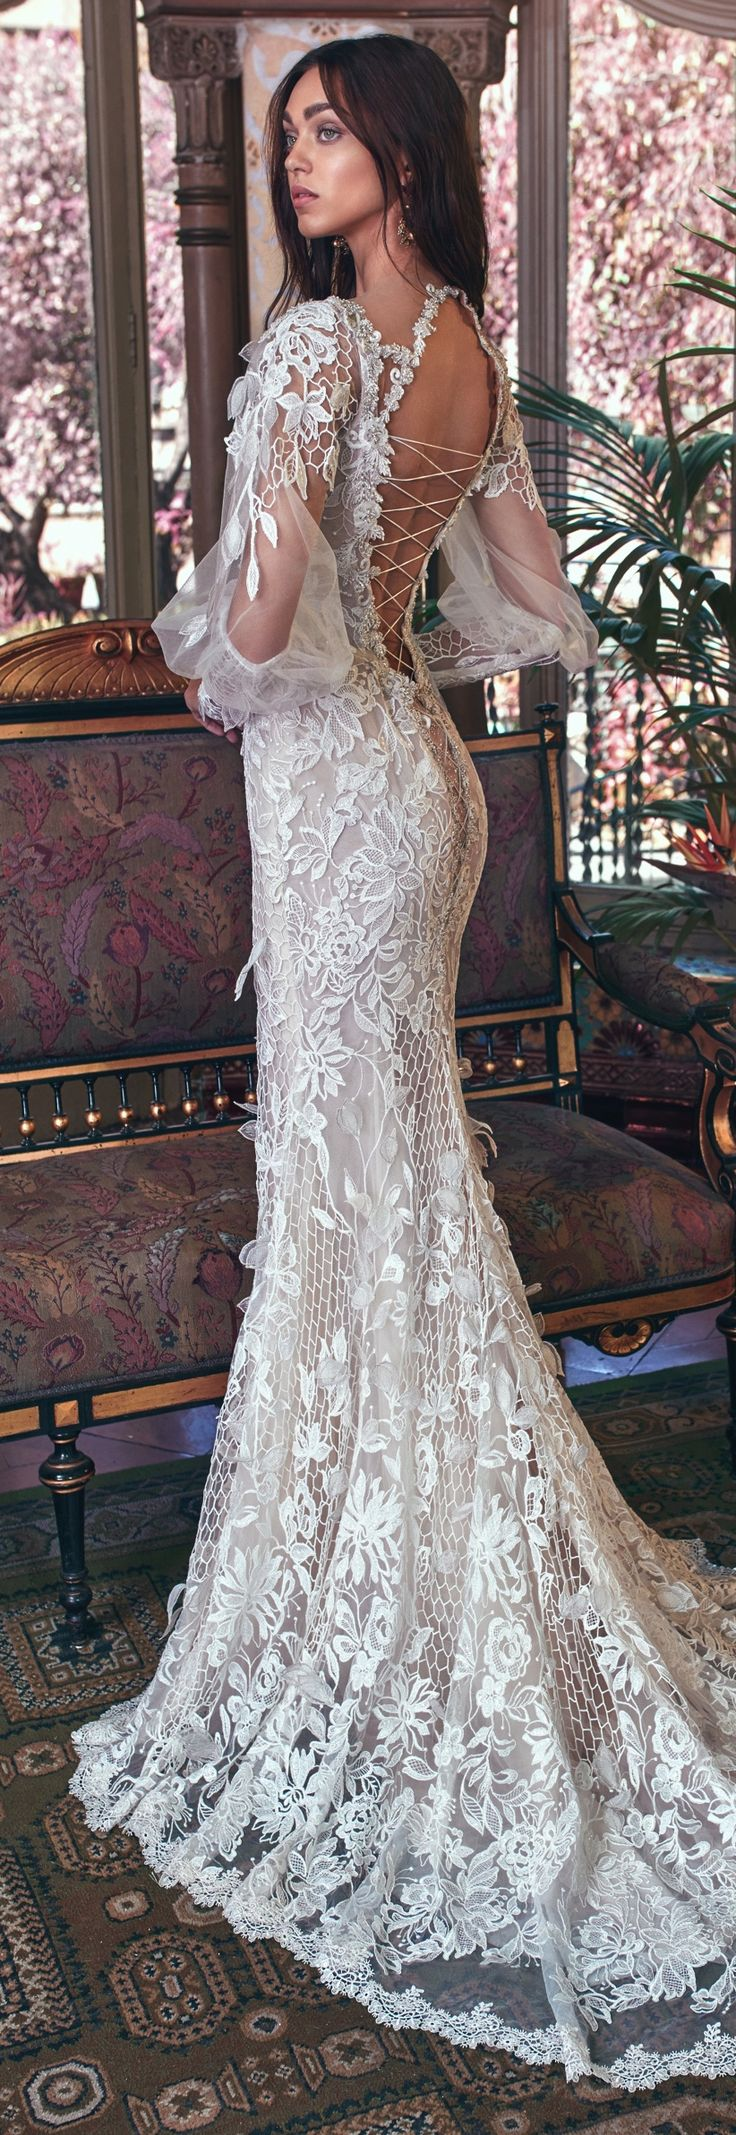 A sheer 3D lace gown with open work fish net elements, a low plunging V neckline, and sheer Victorian sleeves with lace cuffs. The gown has a light powder pink background and the lace is embroidered with silver thread. The neckline is embroidered with an antique Victorian embroidery. The back has a very low V and is laced all the way down.